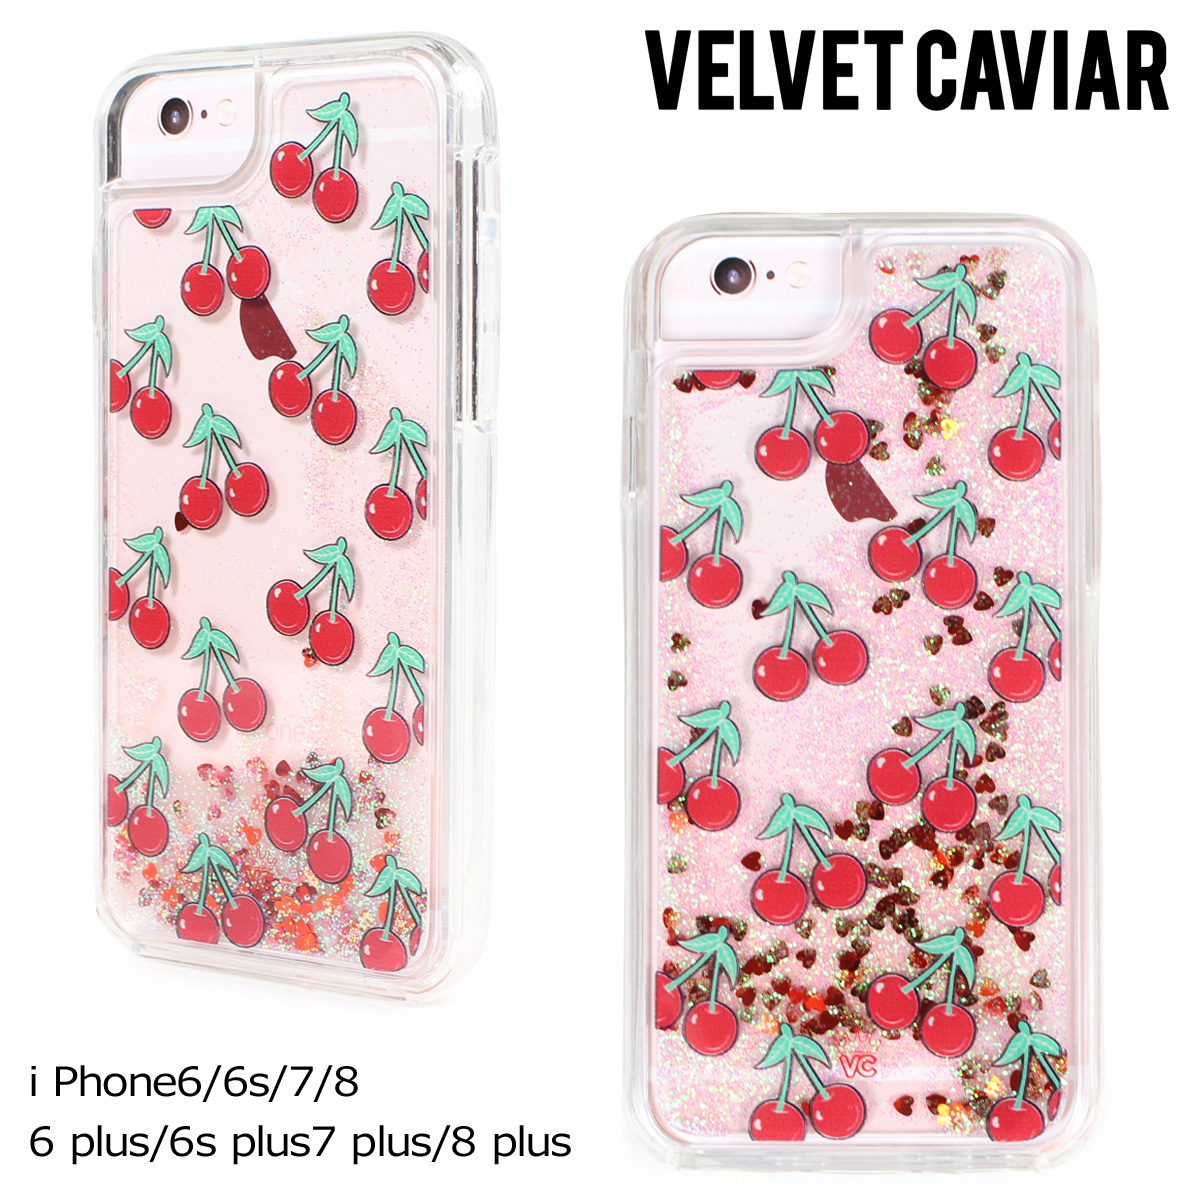 release date: 279ee 95b68 Velvet Caviar velvet caviar iPhone8 iPhone7 8 Plus 7Plus 6s six cases  smartphone iPhone case eyephone iPhone velvet CHERRY BOMB IPHONE CASE  Lady's ...